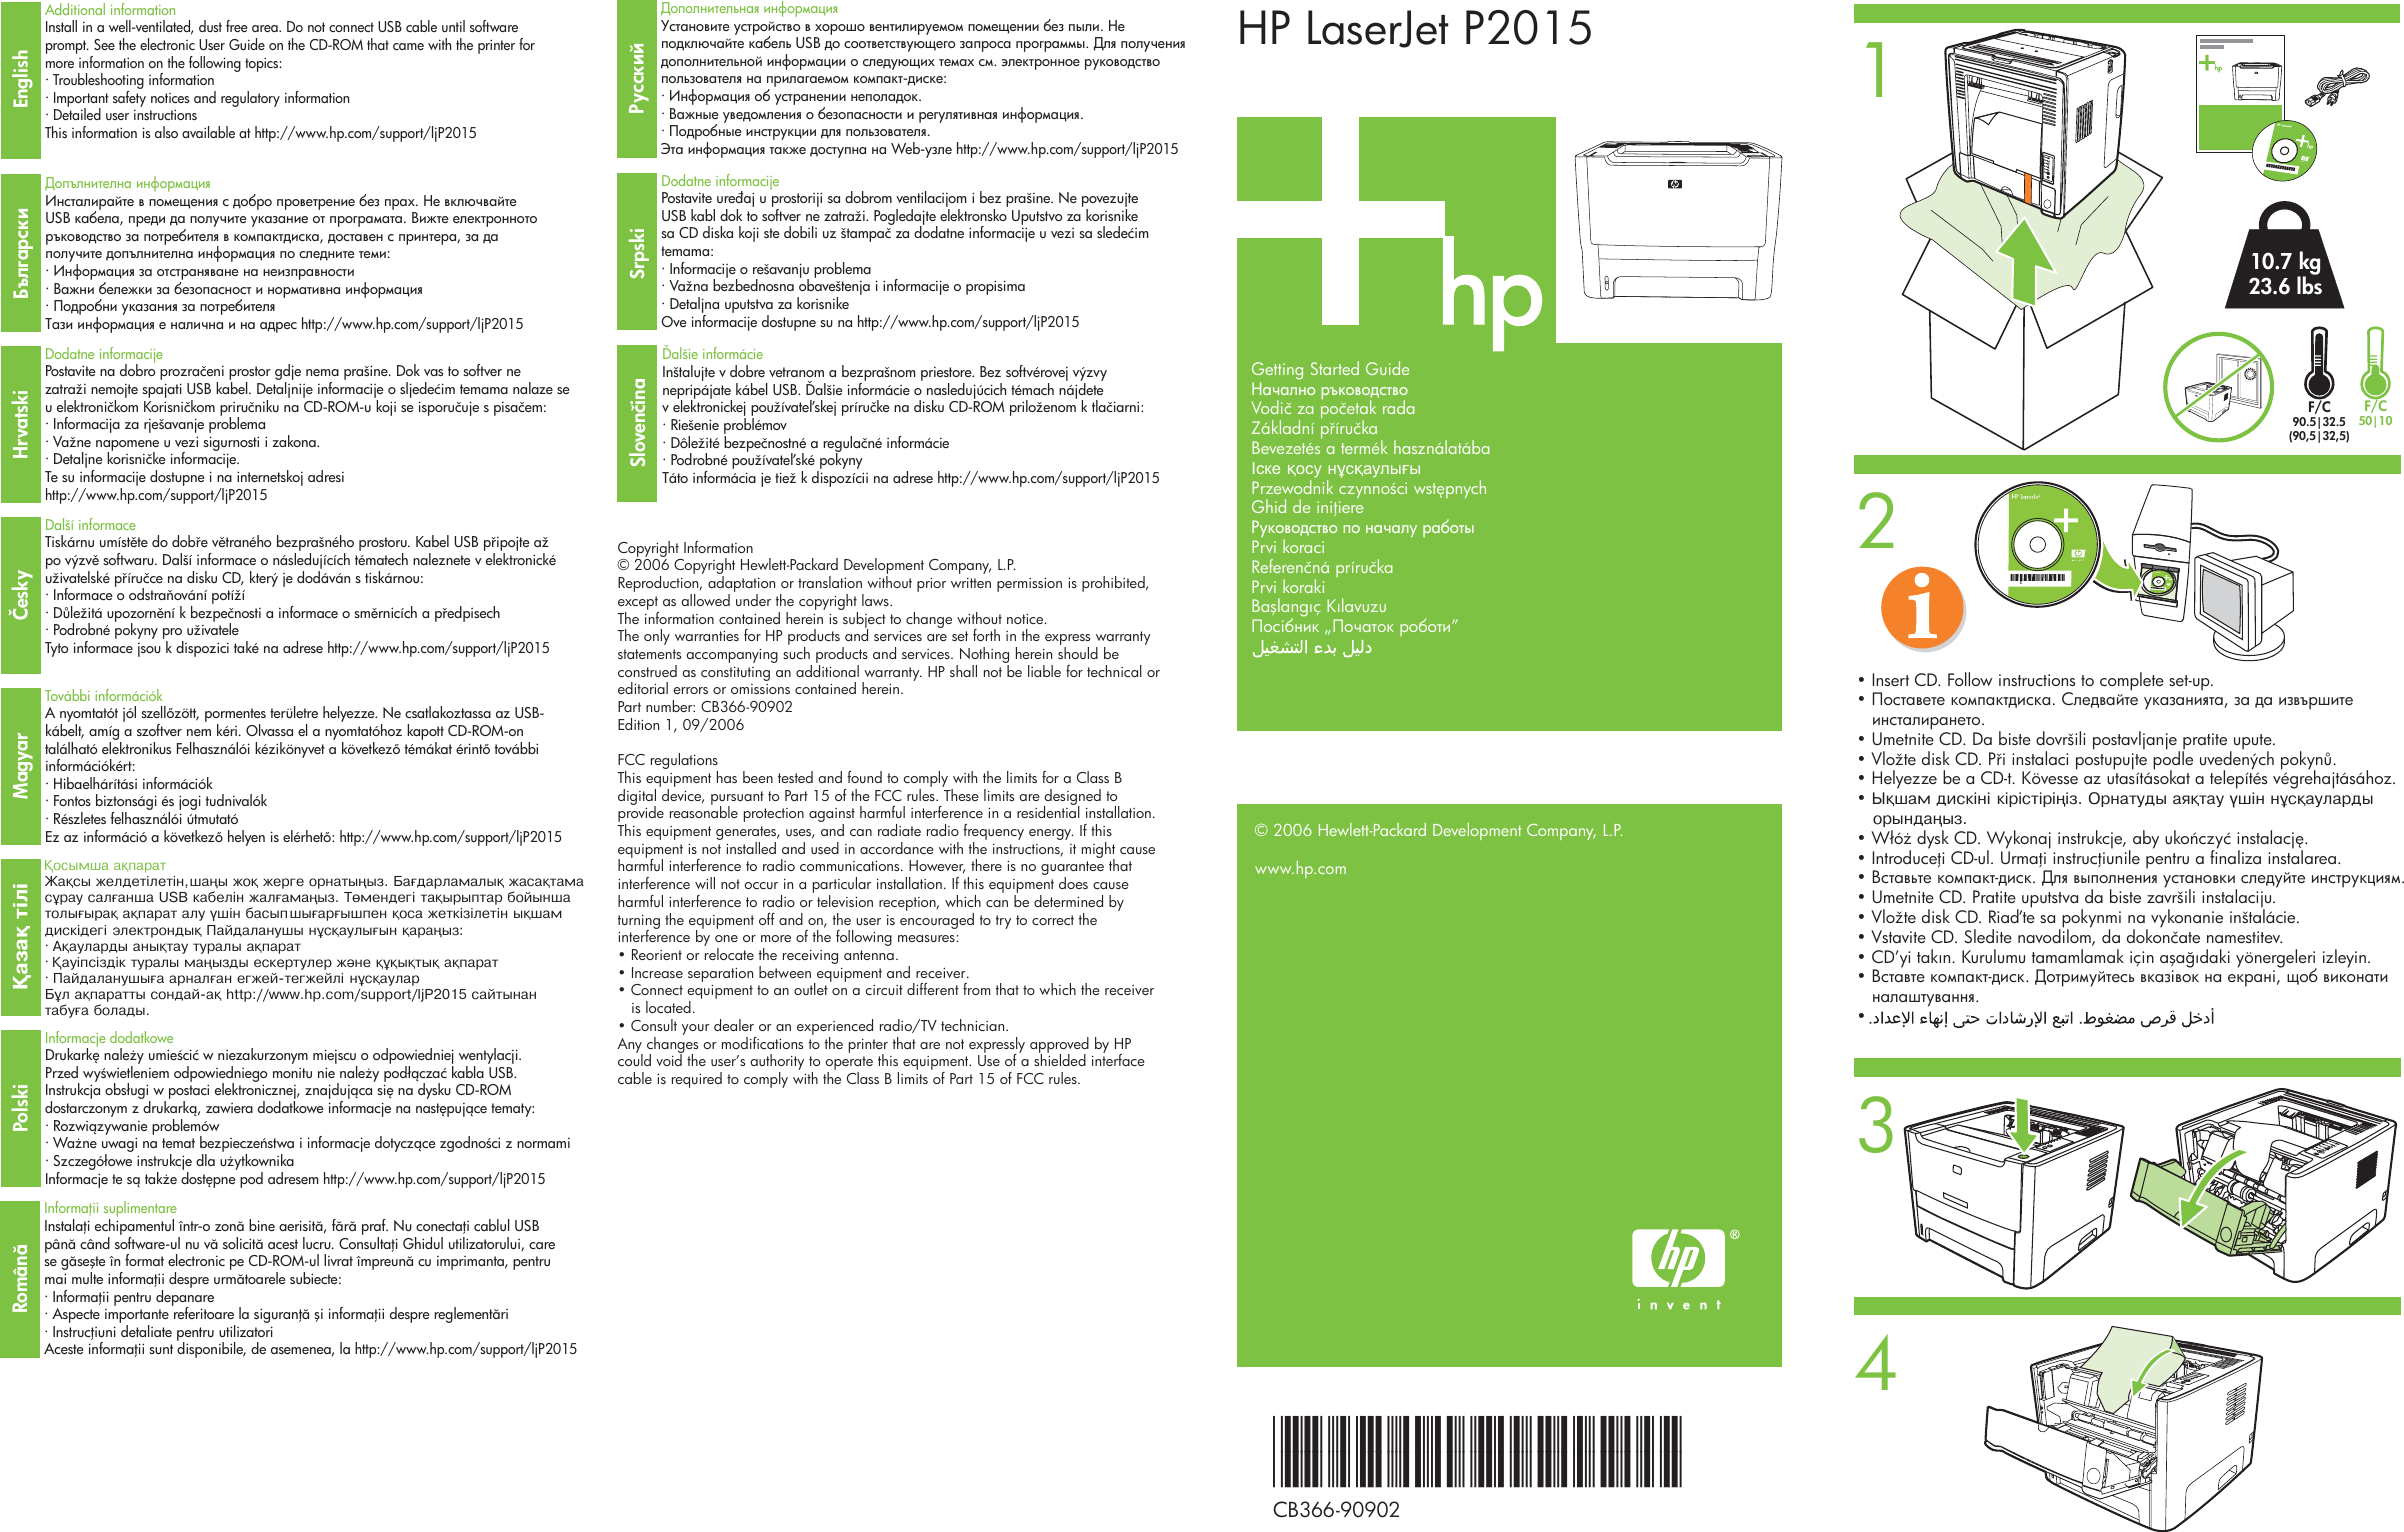 hp laserjet 2015 manual